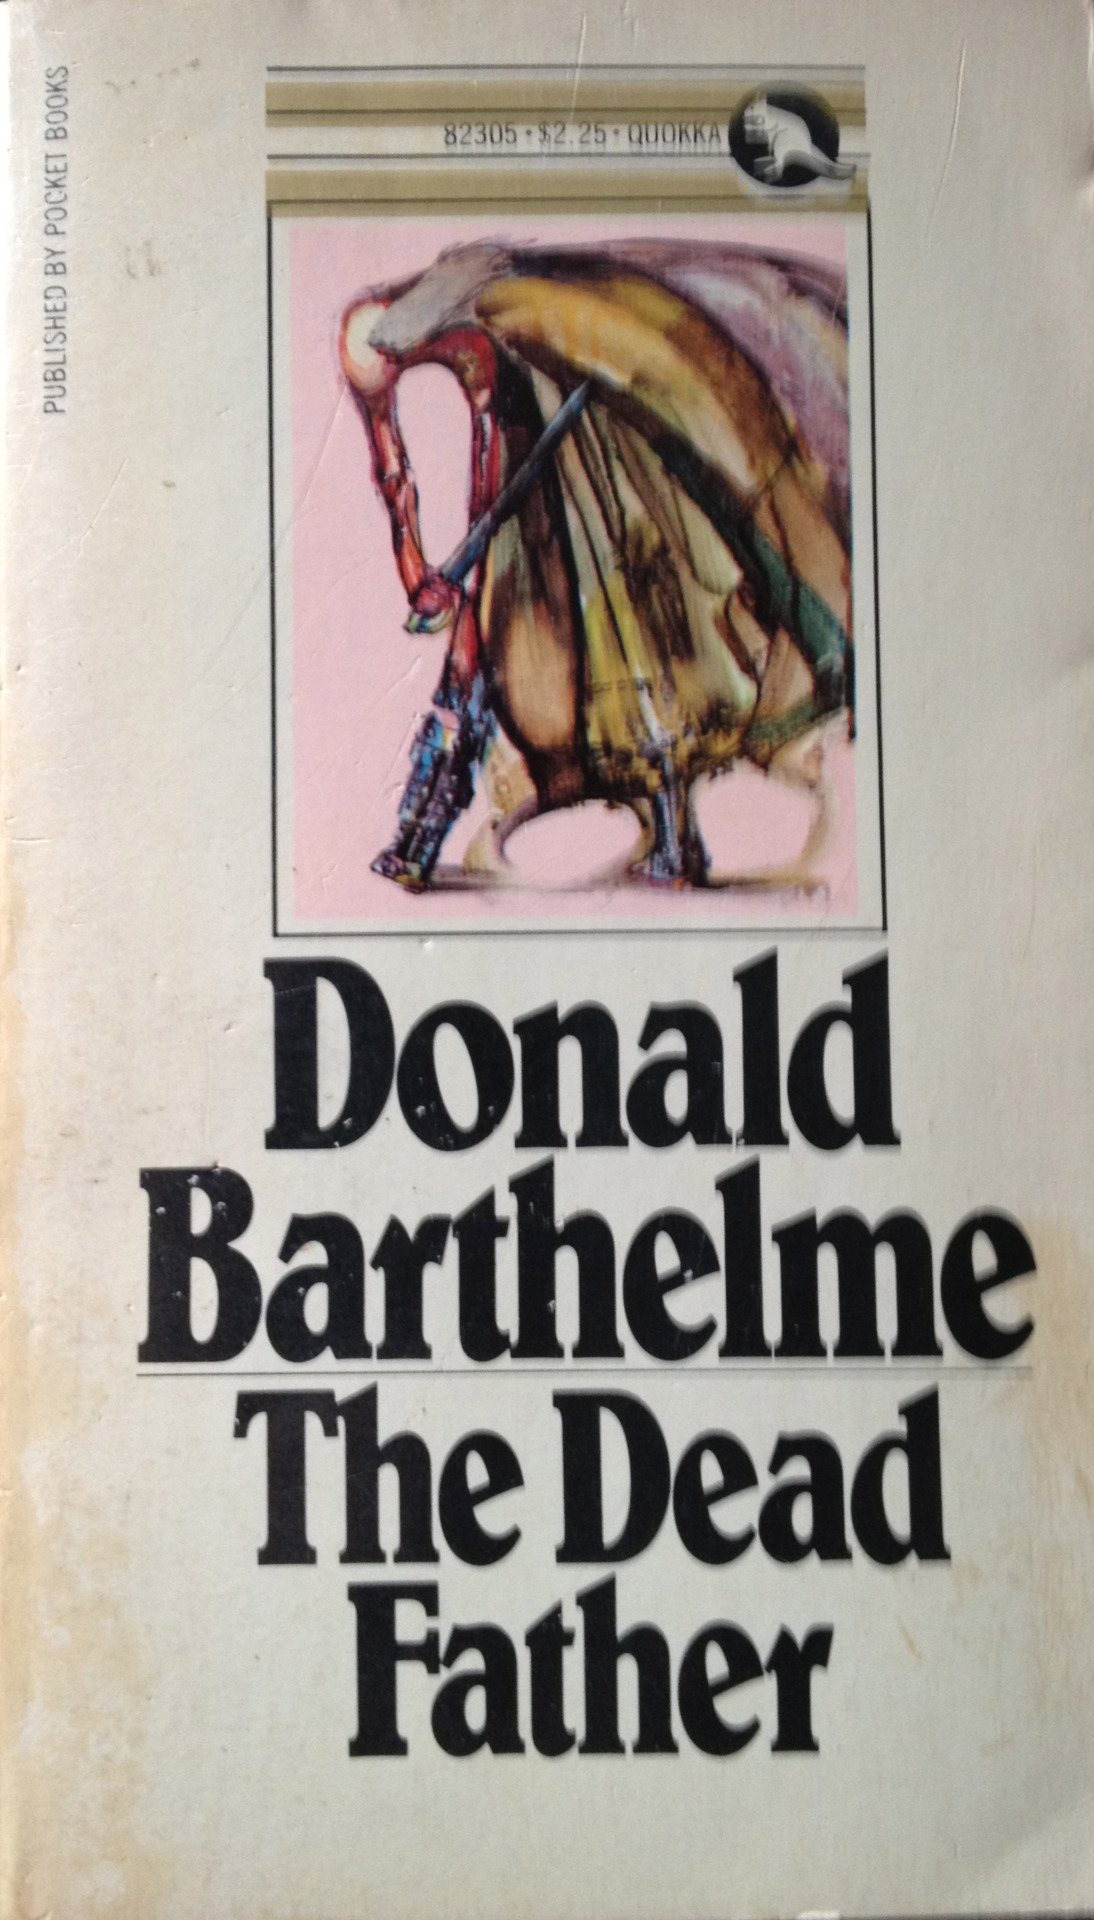 "Donald Barthelme was considered the father of postmodern fiction. I acquired and read this book in 1975, before he was dead. Before my own father was dead. It is funny and strange, and I recommend the second half in particular, ""A Manual for Sons."" Excerpt: There are twenty-two kinds of fathers, of which only nineteen are important. The drugged father is not important. The lionlike father (rare) is not important. The Holy Father is not important, for our purposes. There is a certain father who is falling through the air, heals where his head should be, head where his heels should be. The falling father has grave meaning for all of us. The wind throws his hair in every direction. His cheeks are flaps almost touching his ears. His garments are shreds, telltales. This father has the power of curing the bites of mad dogs, and the power of choreographing the interest rates. What is he thinking about, on the way down? He is thinking about emotional extravagance. The Romantic Movement, with its exploitation of the sensational, the morbid, the occult, the erotic! The falling father has noticed Romantic tendencies in several of his sons. The sons have taken to wearing slices of raw bacon in their caps, and speaking out against the interest rates. After all he has done for them! Many bicycles!    [Originally posted on my discontinued This Old Book Tumblr.]"